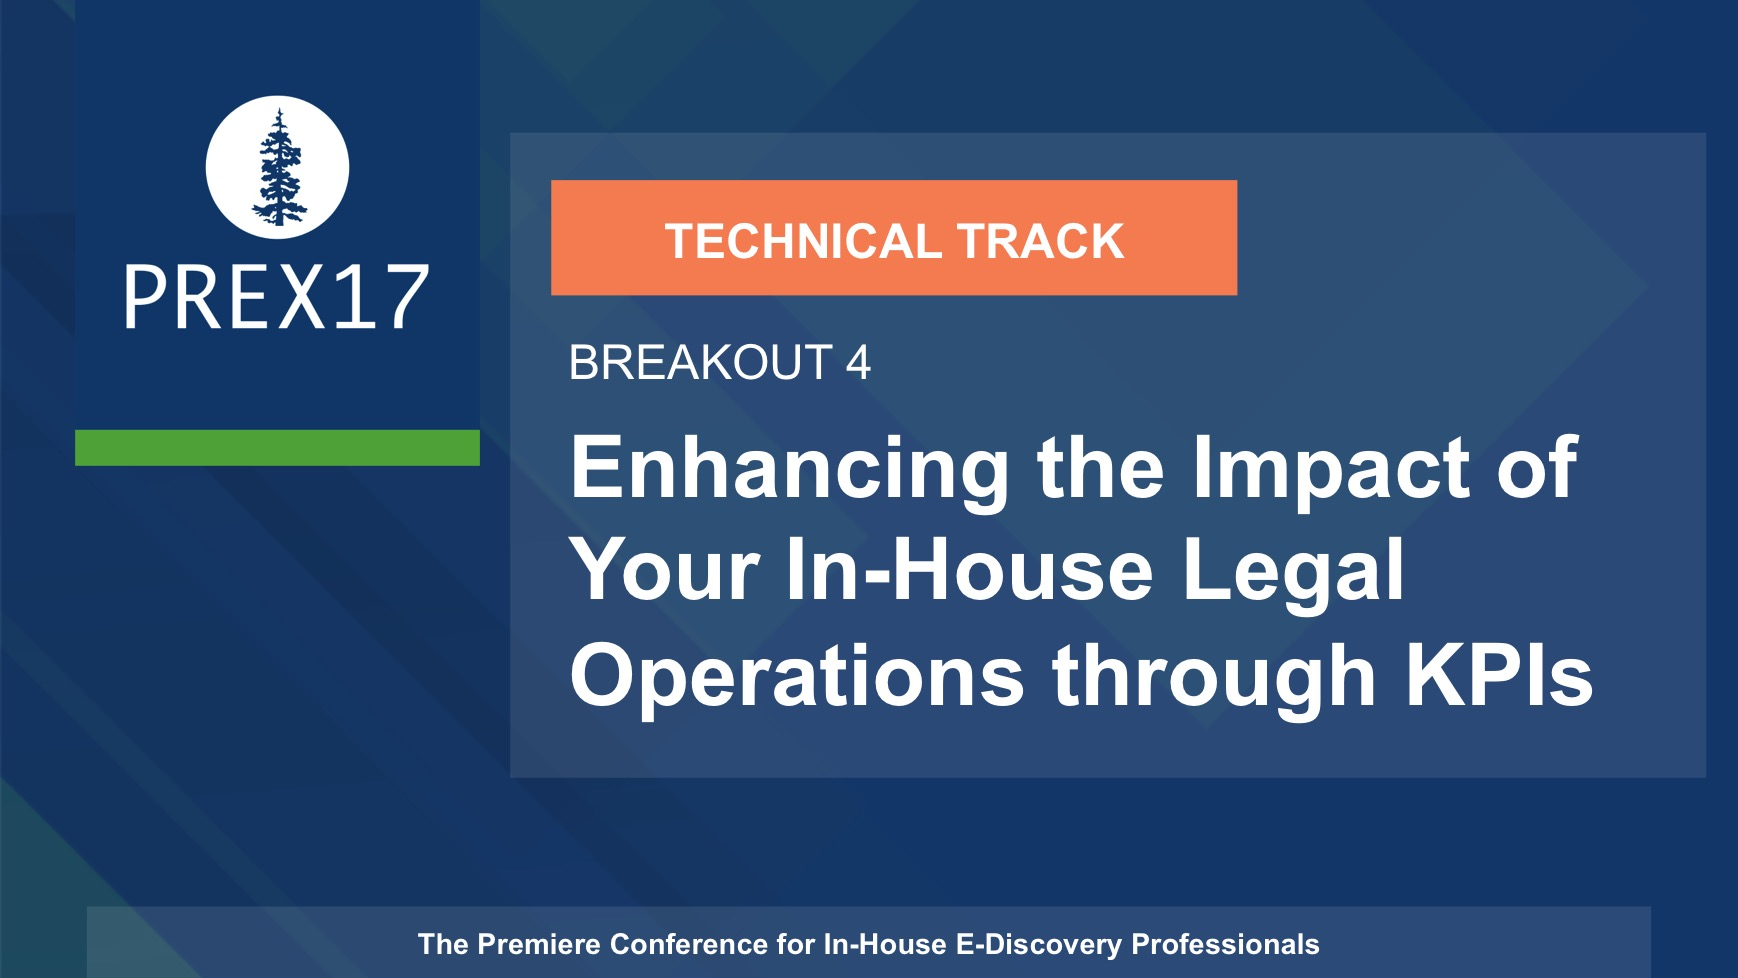 (Breakout 4 - Technical) Enhancing the Impact of Your In-House Legal Operations through KPIs